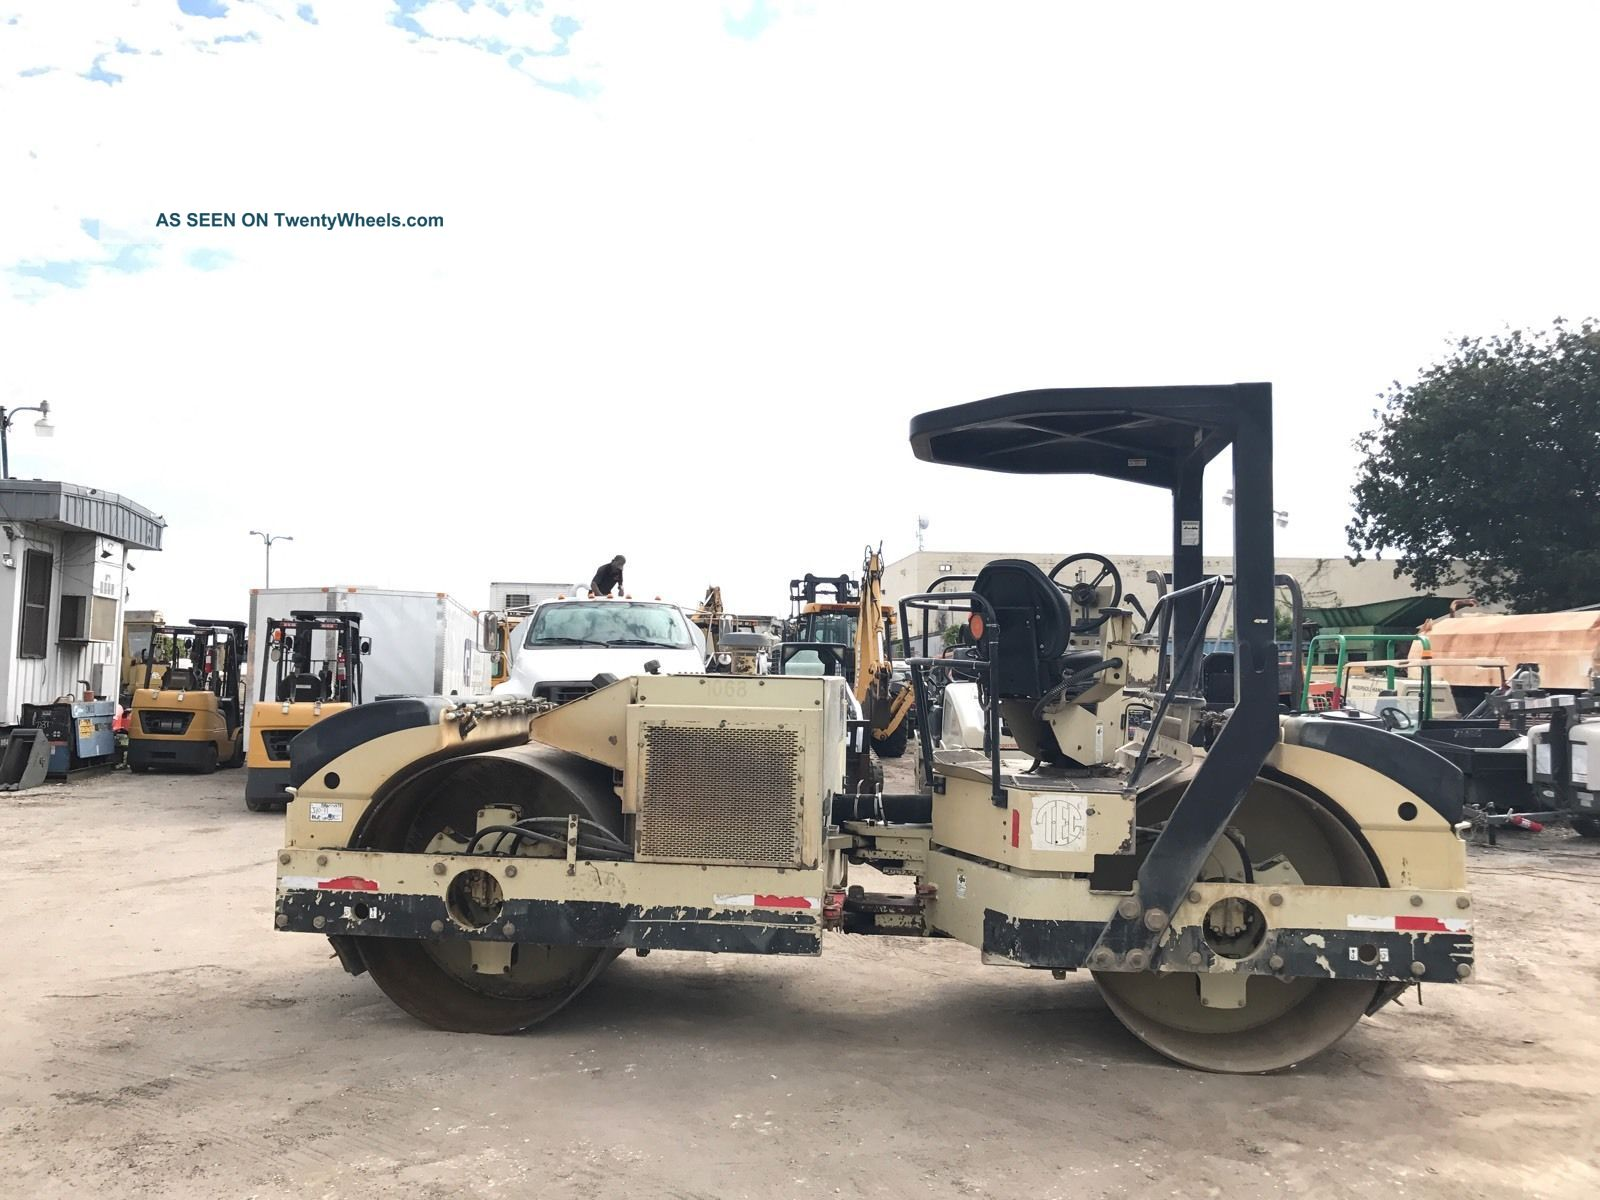 2007 Ingersoll - Rand Dd90 Double Drum Roller Compactors & Rollers - Riding photo